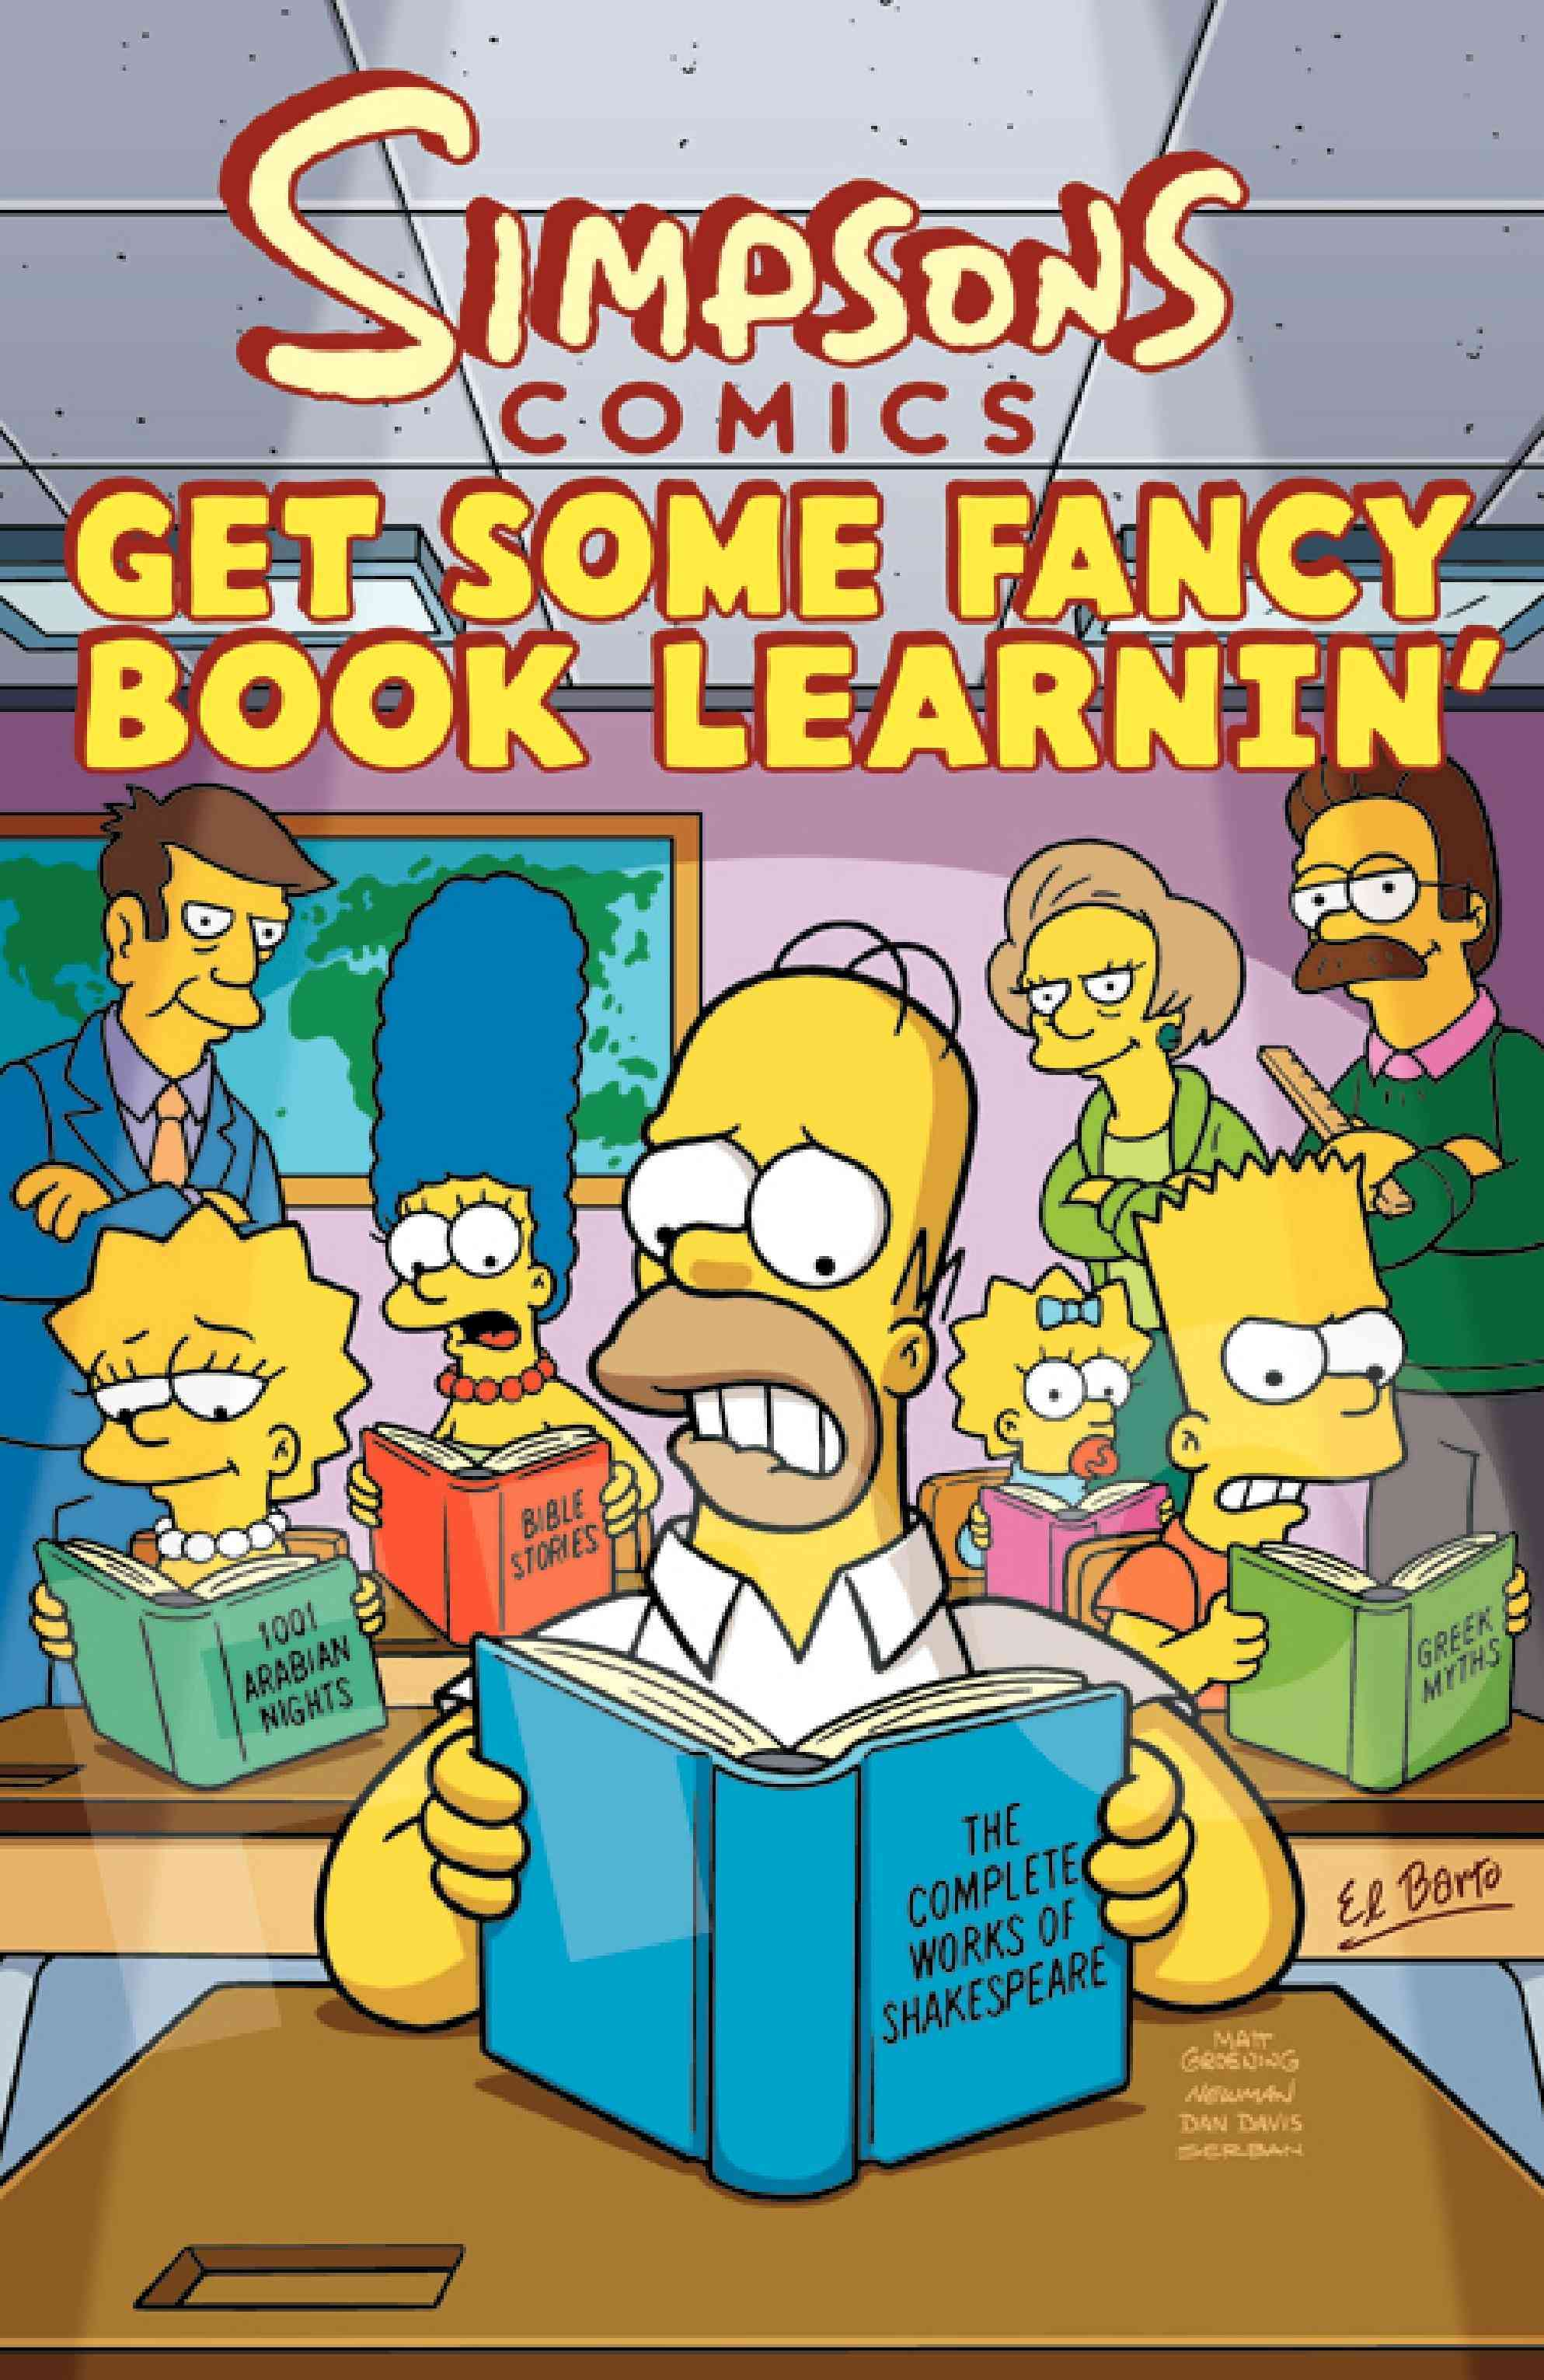 Simpsons Comics Get Some Fancy Book Learnin' (Paperback)